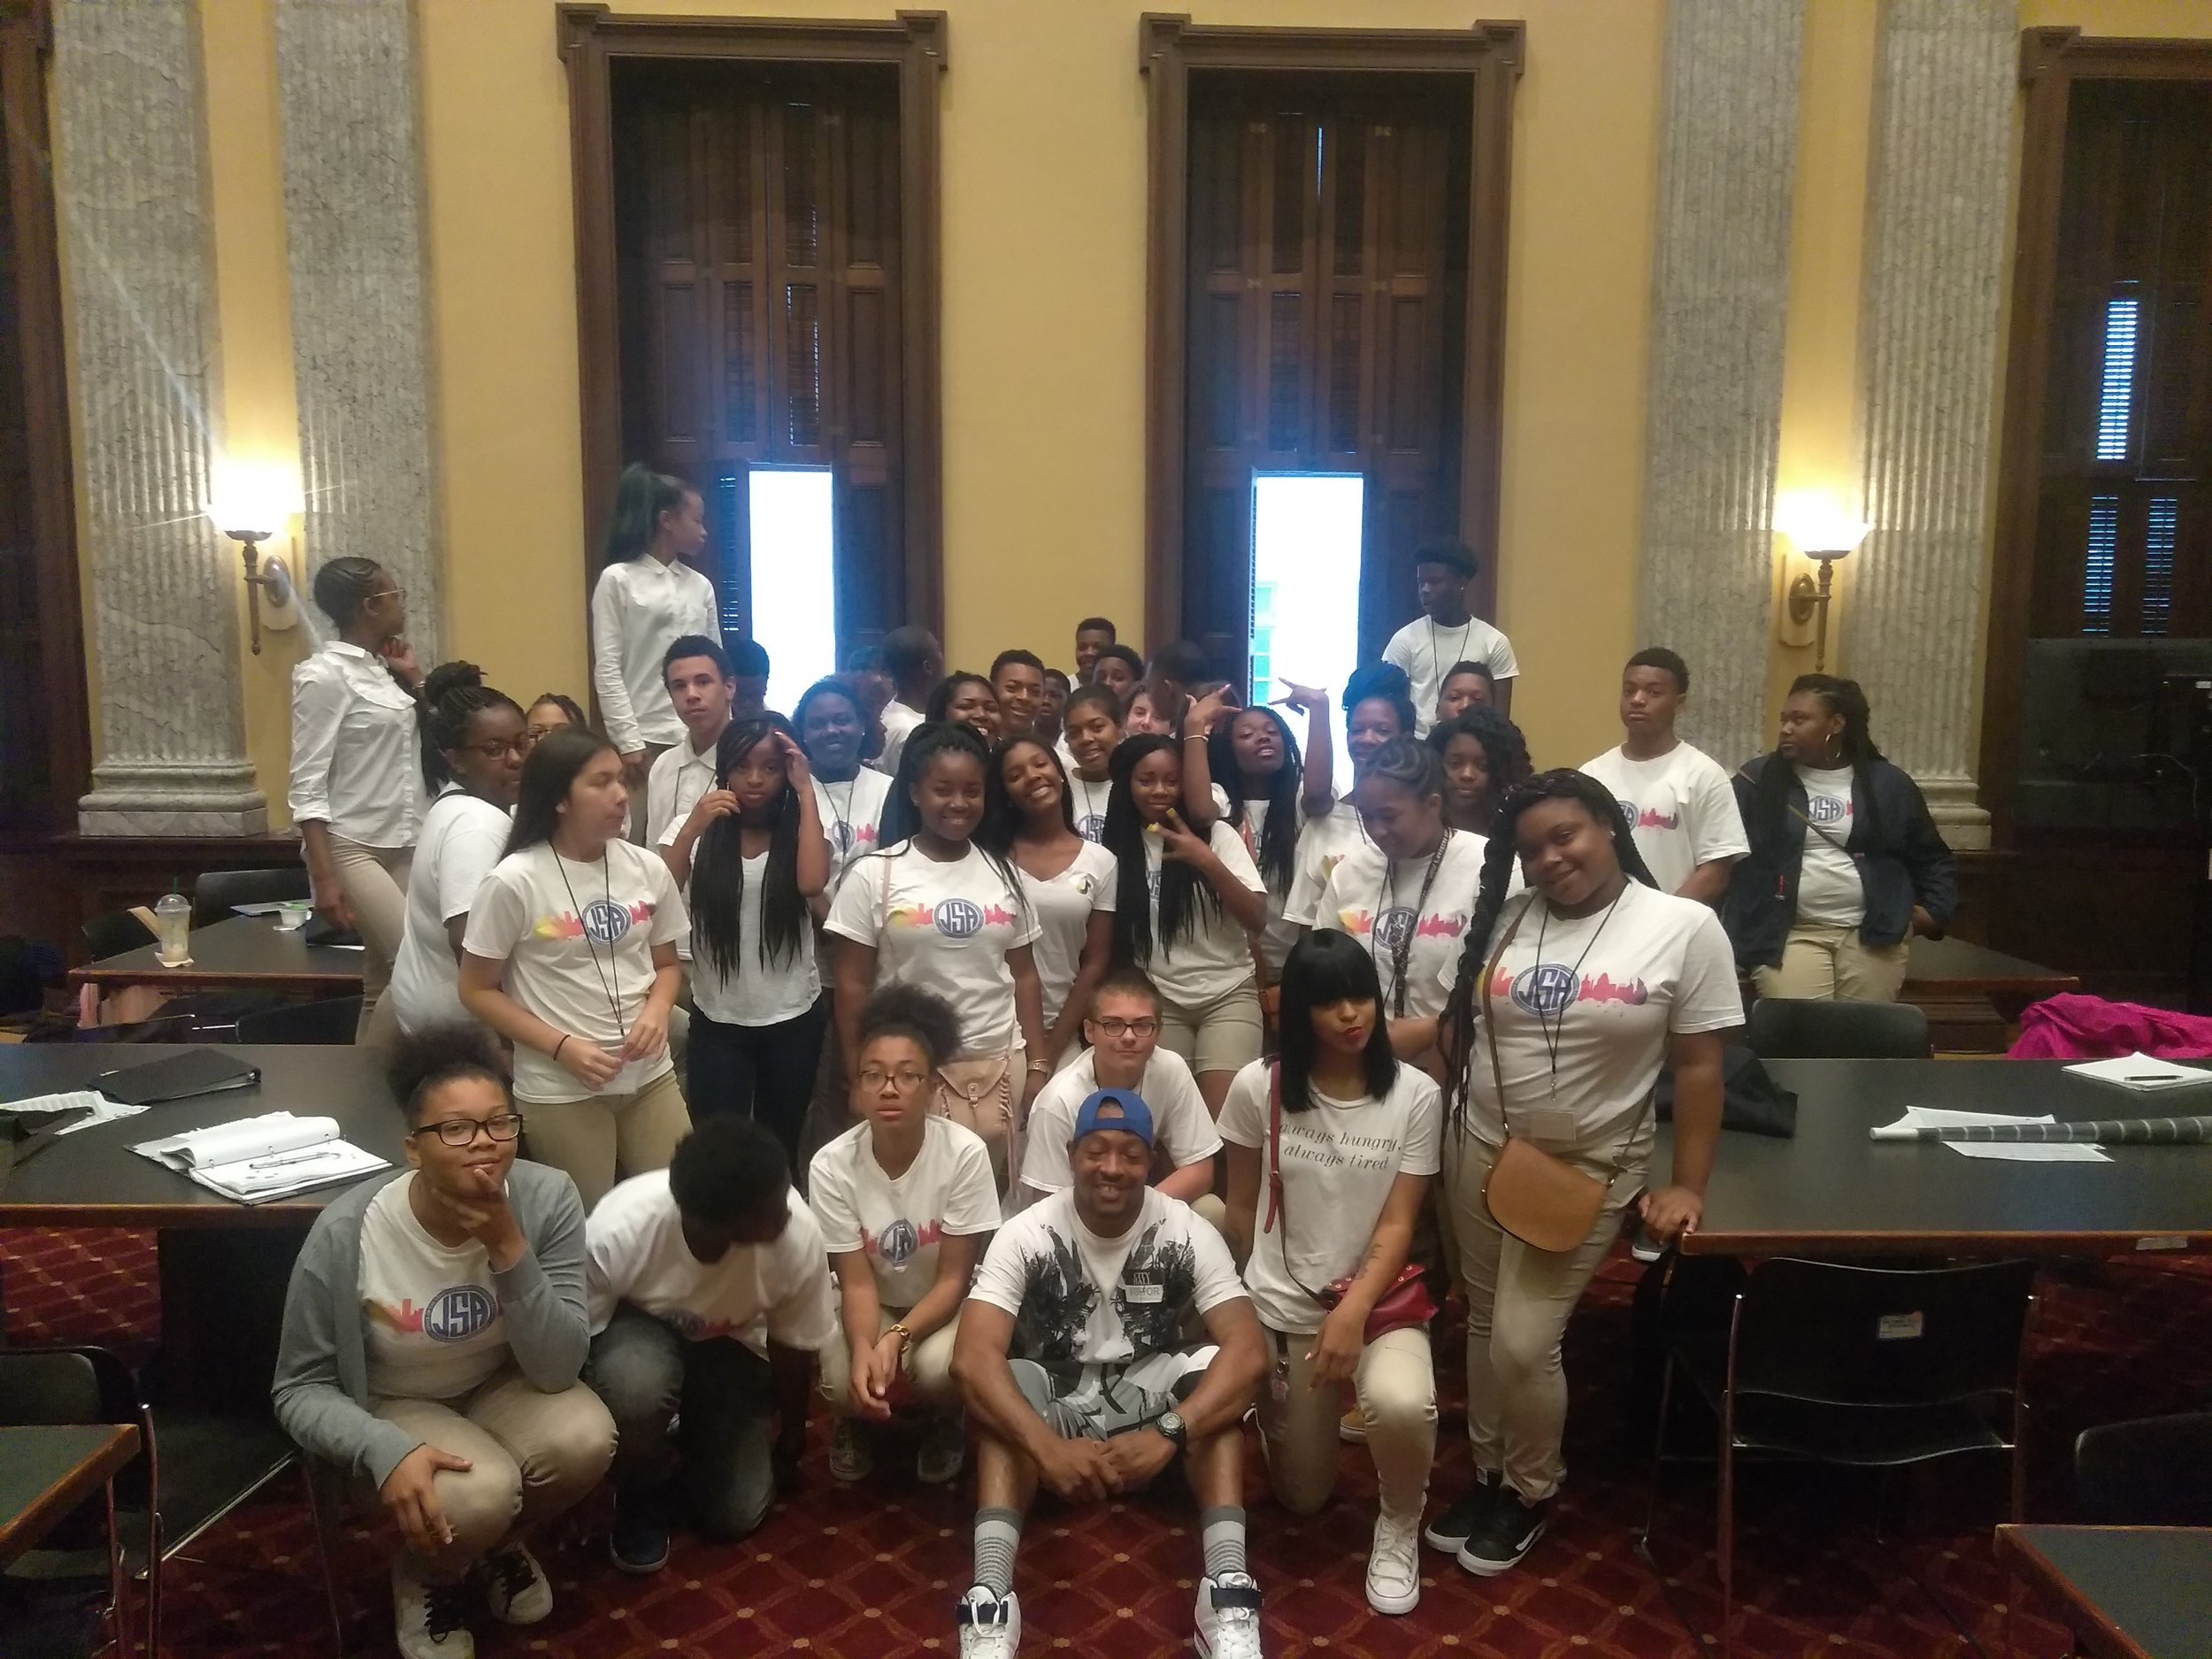 HOPE leader Antoin Quarles with youth from City Hall Urban Community Development to Relieve Barriers